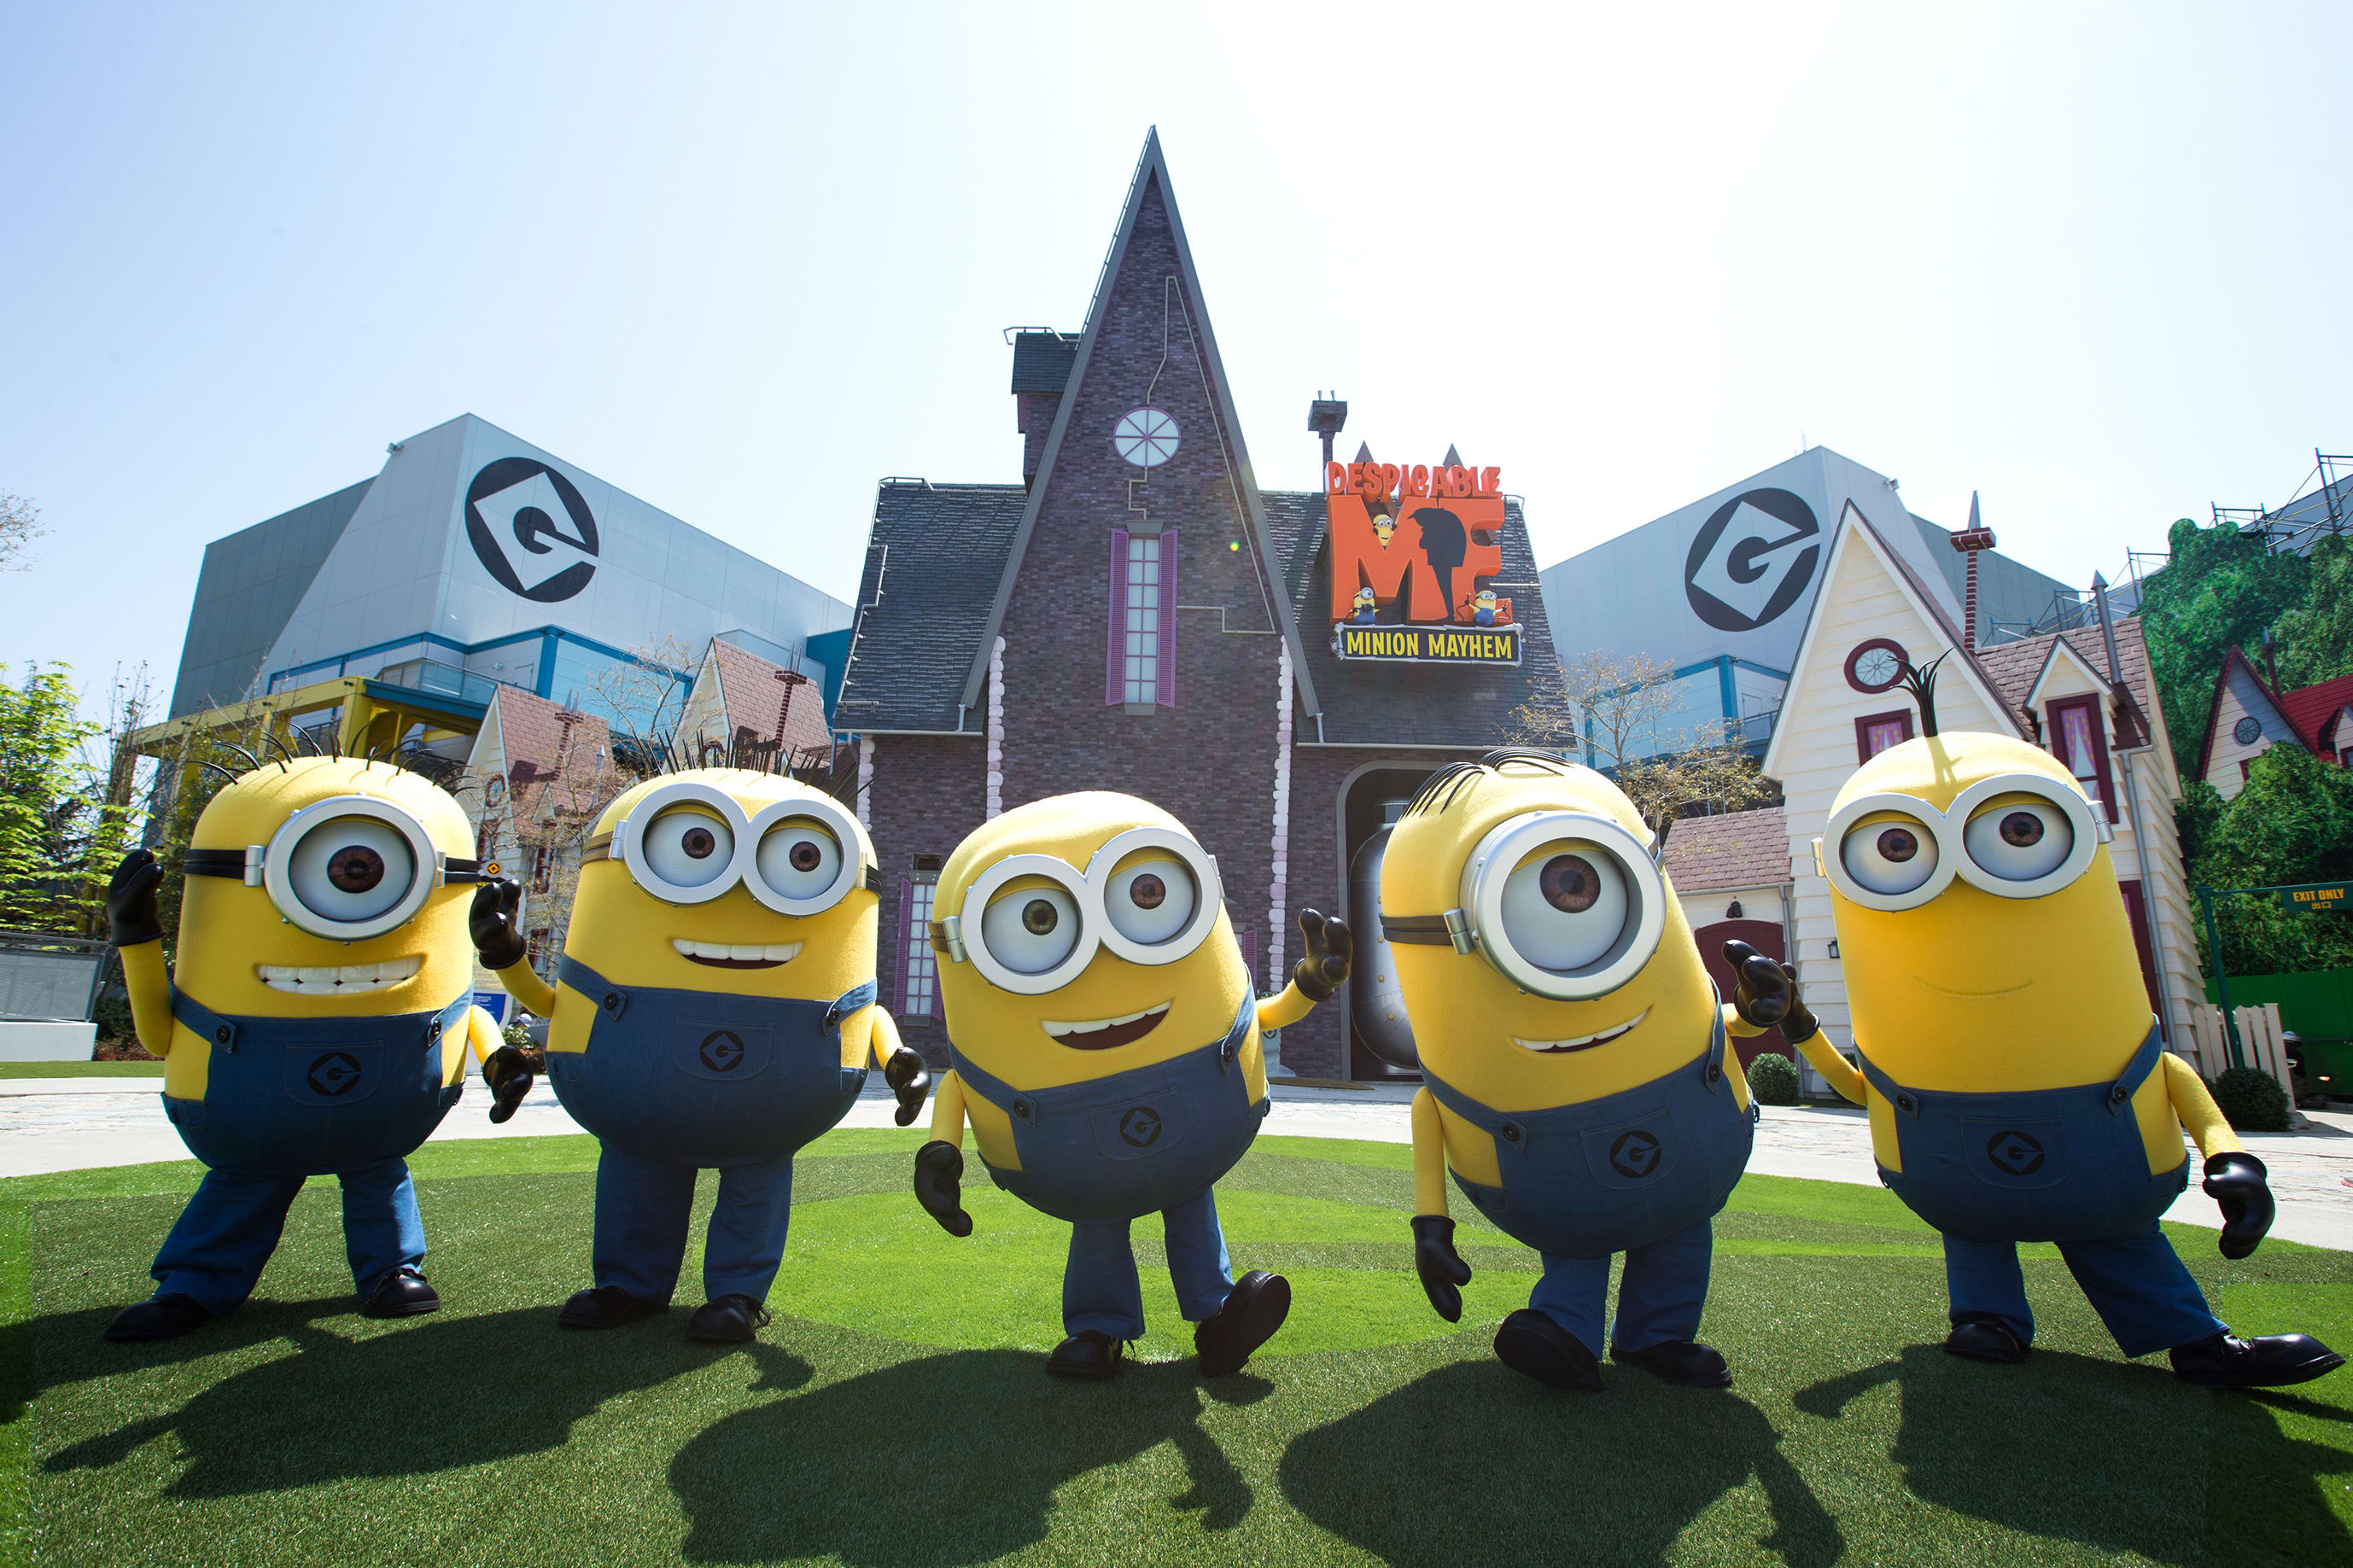 Despicable Me, Minion Made and all related marks and characters are trademarks and copyrights of Universal Studios. Licensed by Universal Studios Licensing LLC. All Rights Reserved. © & ® Universal Studios. All rights reserved